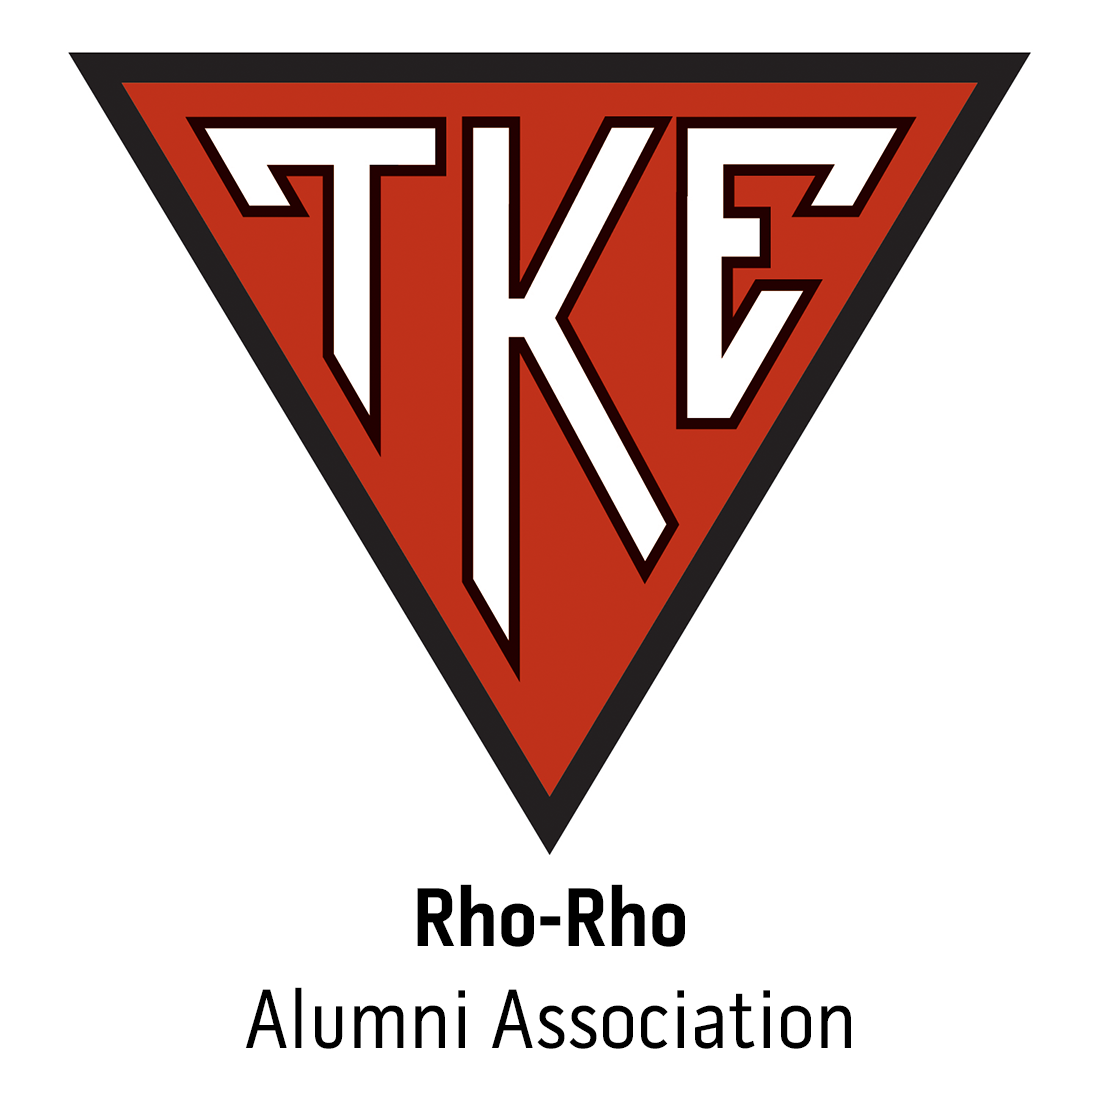 Rho-Rho Alumni Association Alumni at Sam Houston State University